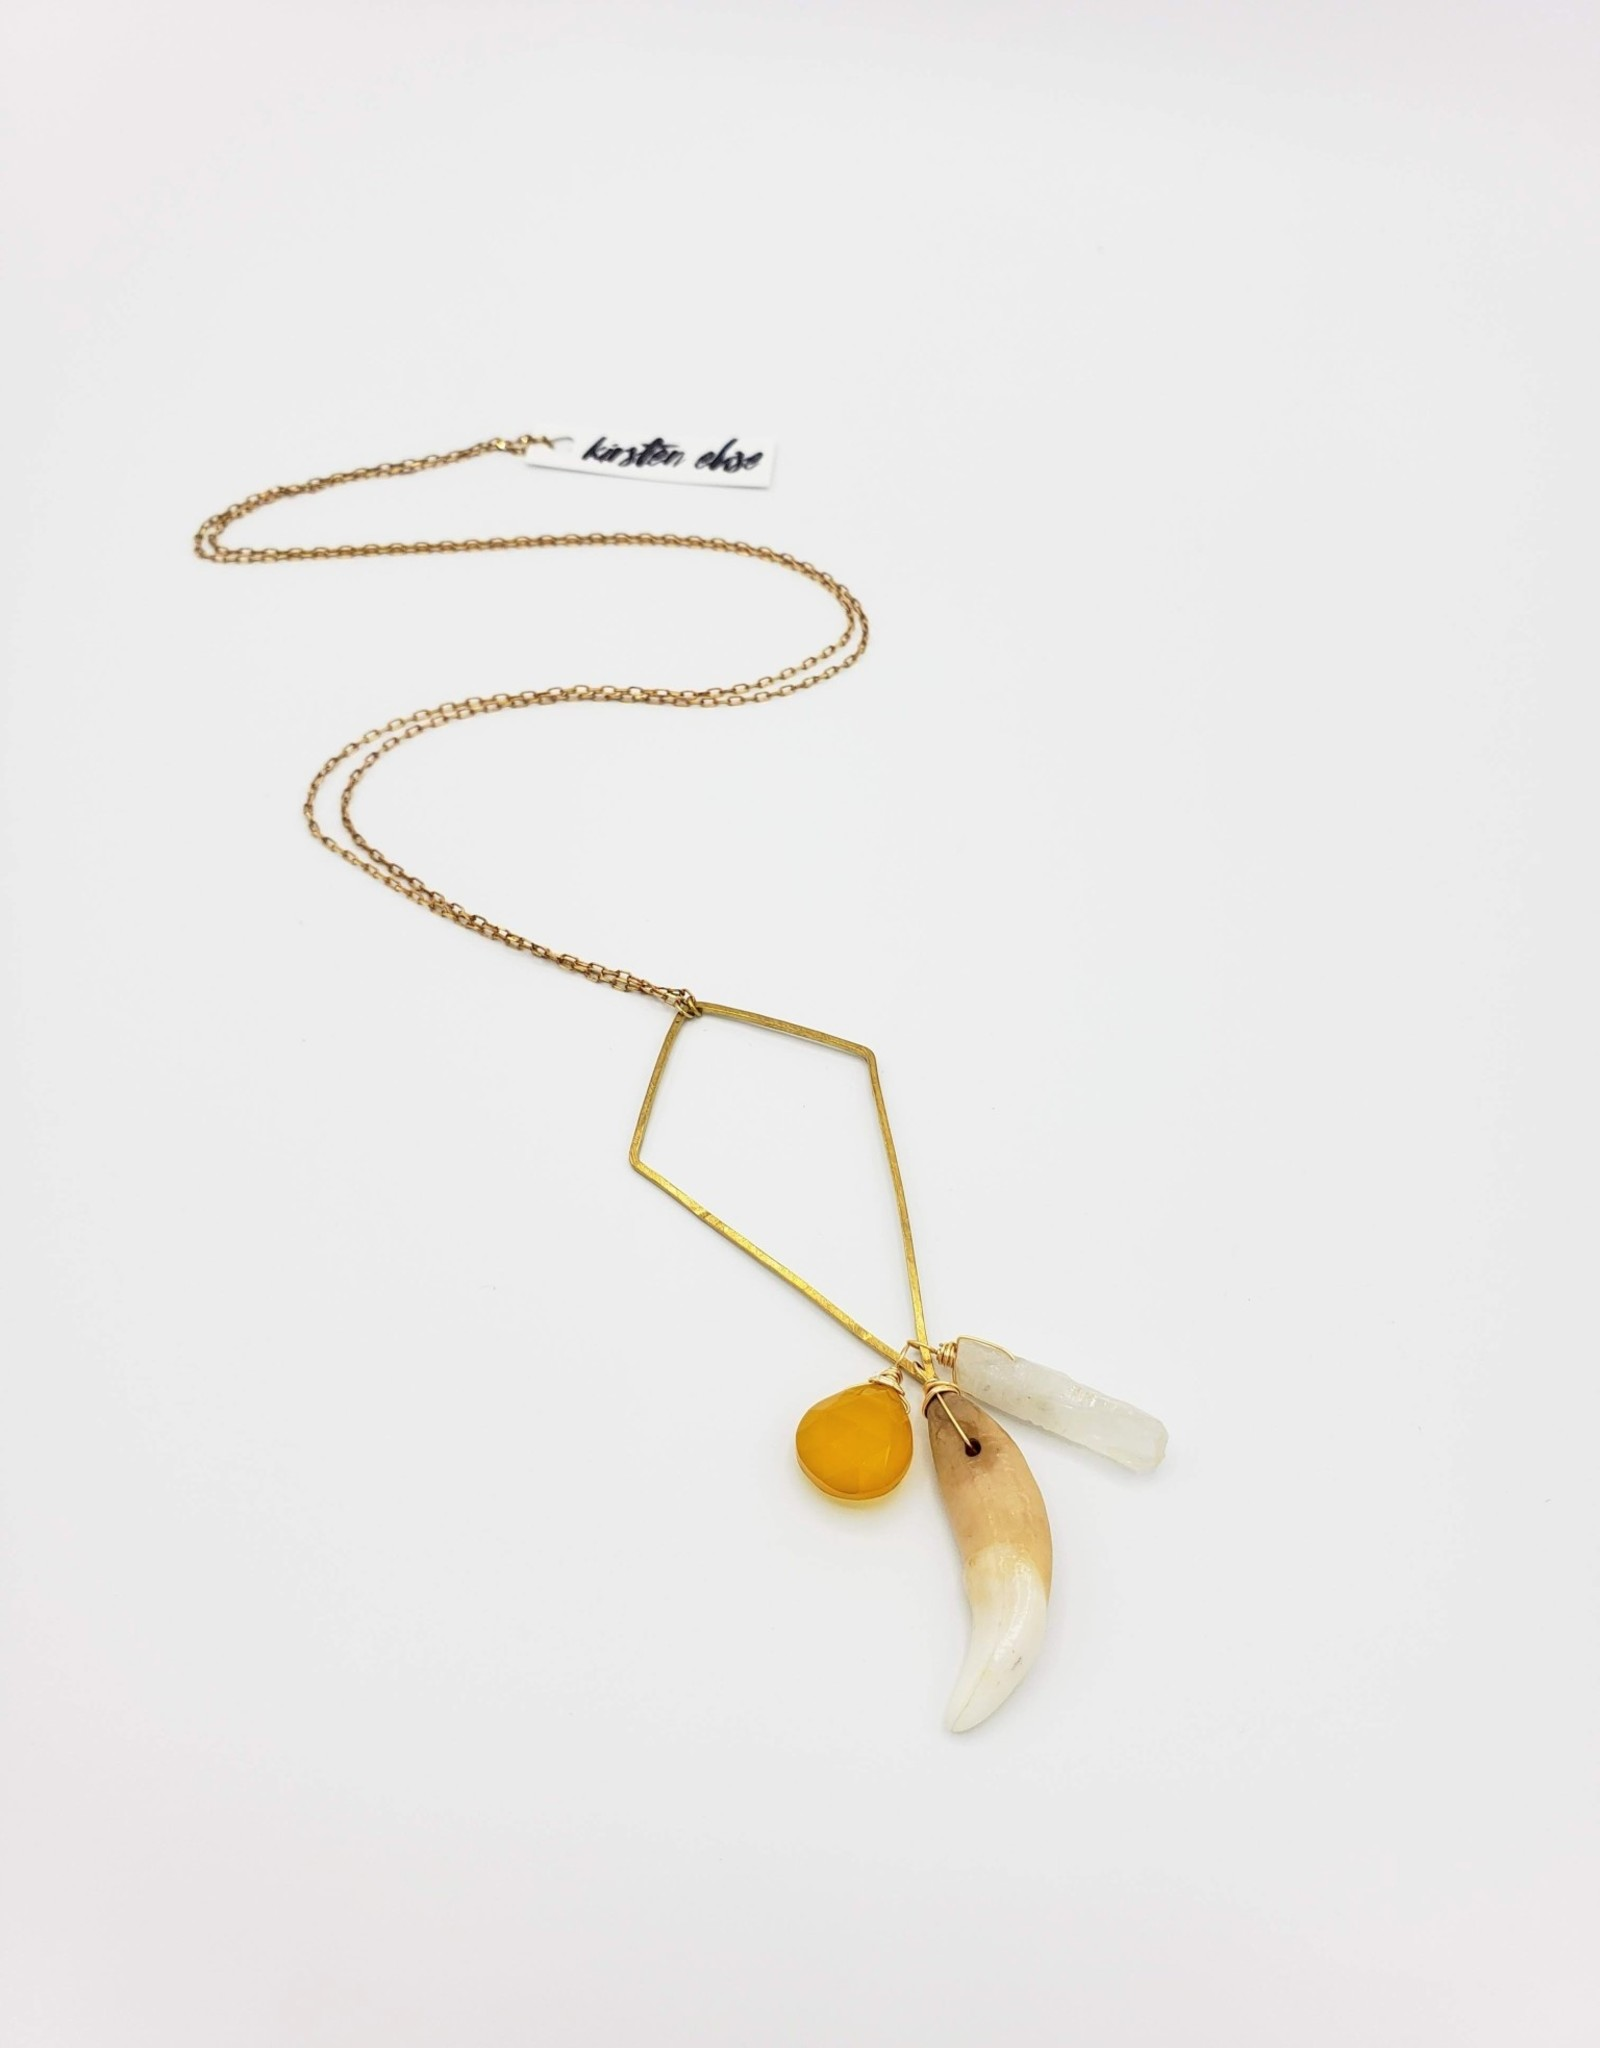 Kirsten Elise Jewelry Kite Shaped Necklace with Coyote Tooth, Quartz and Chalcedony